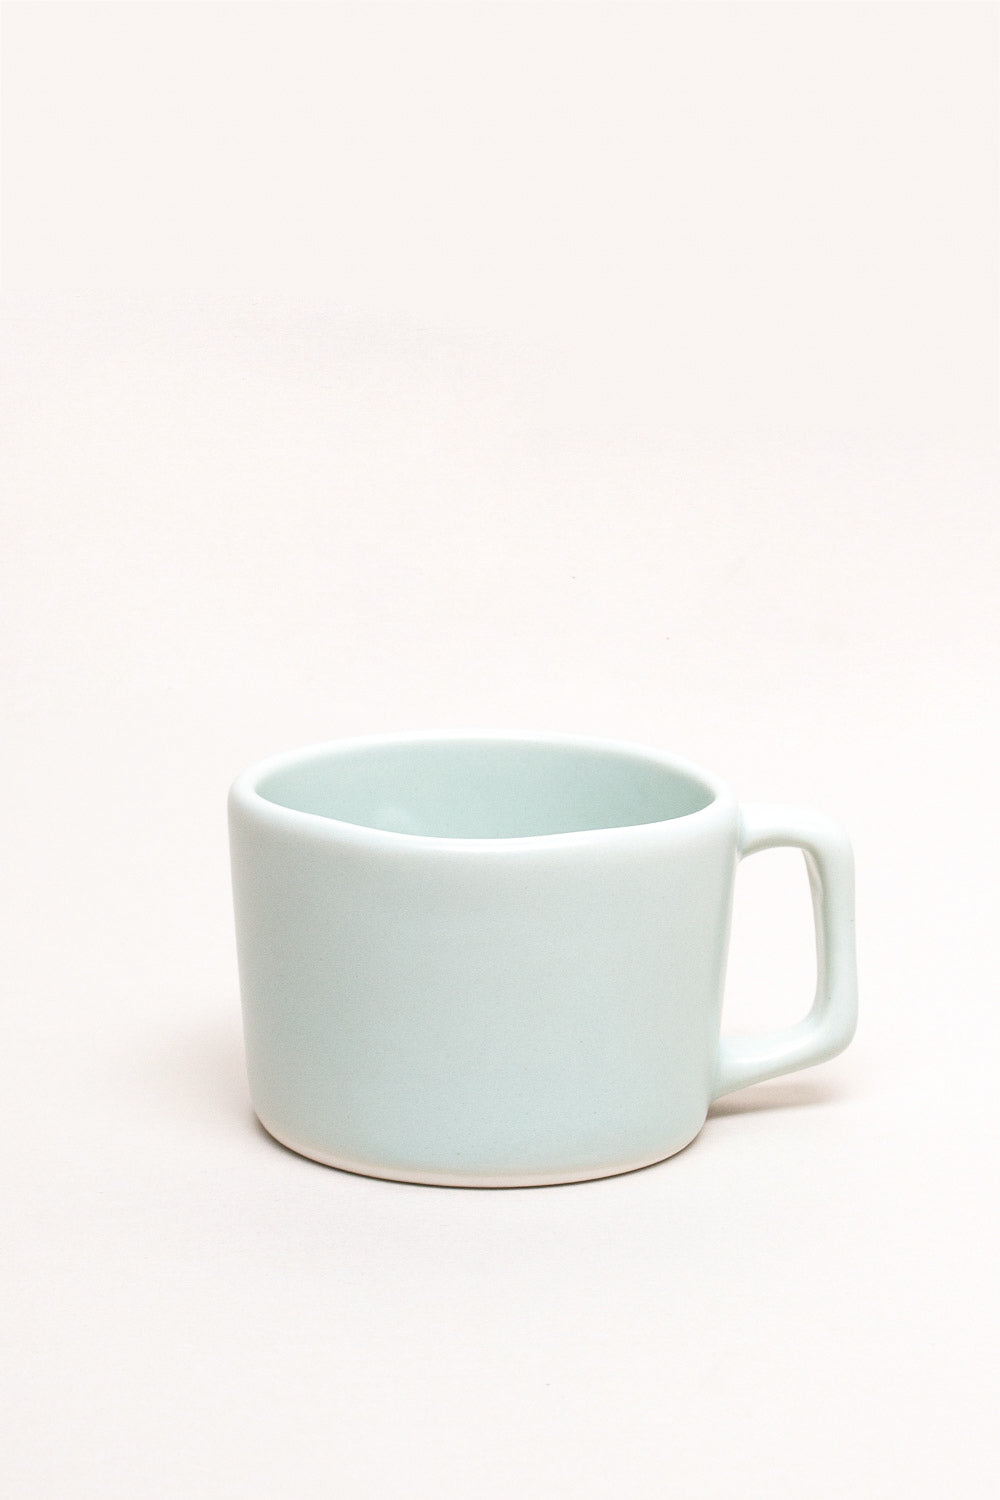 Mug Large in Celadon